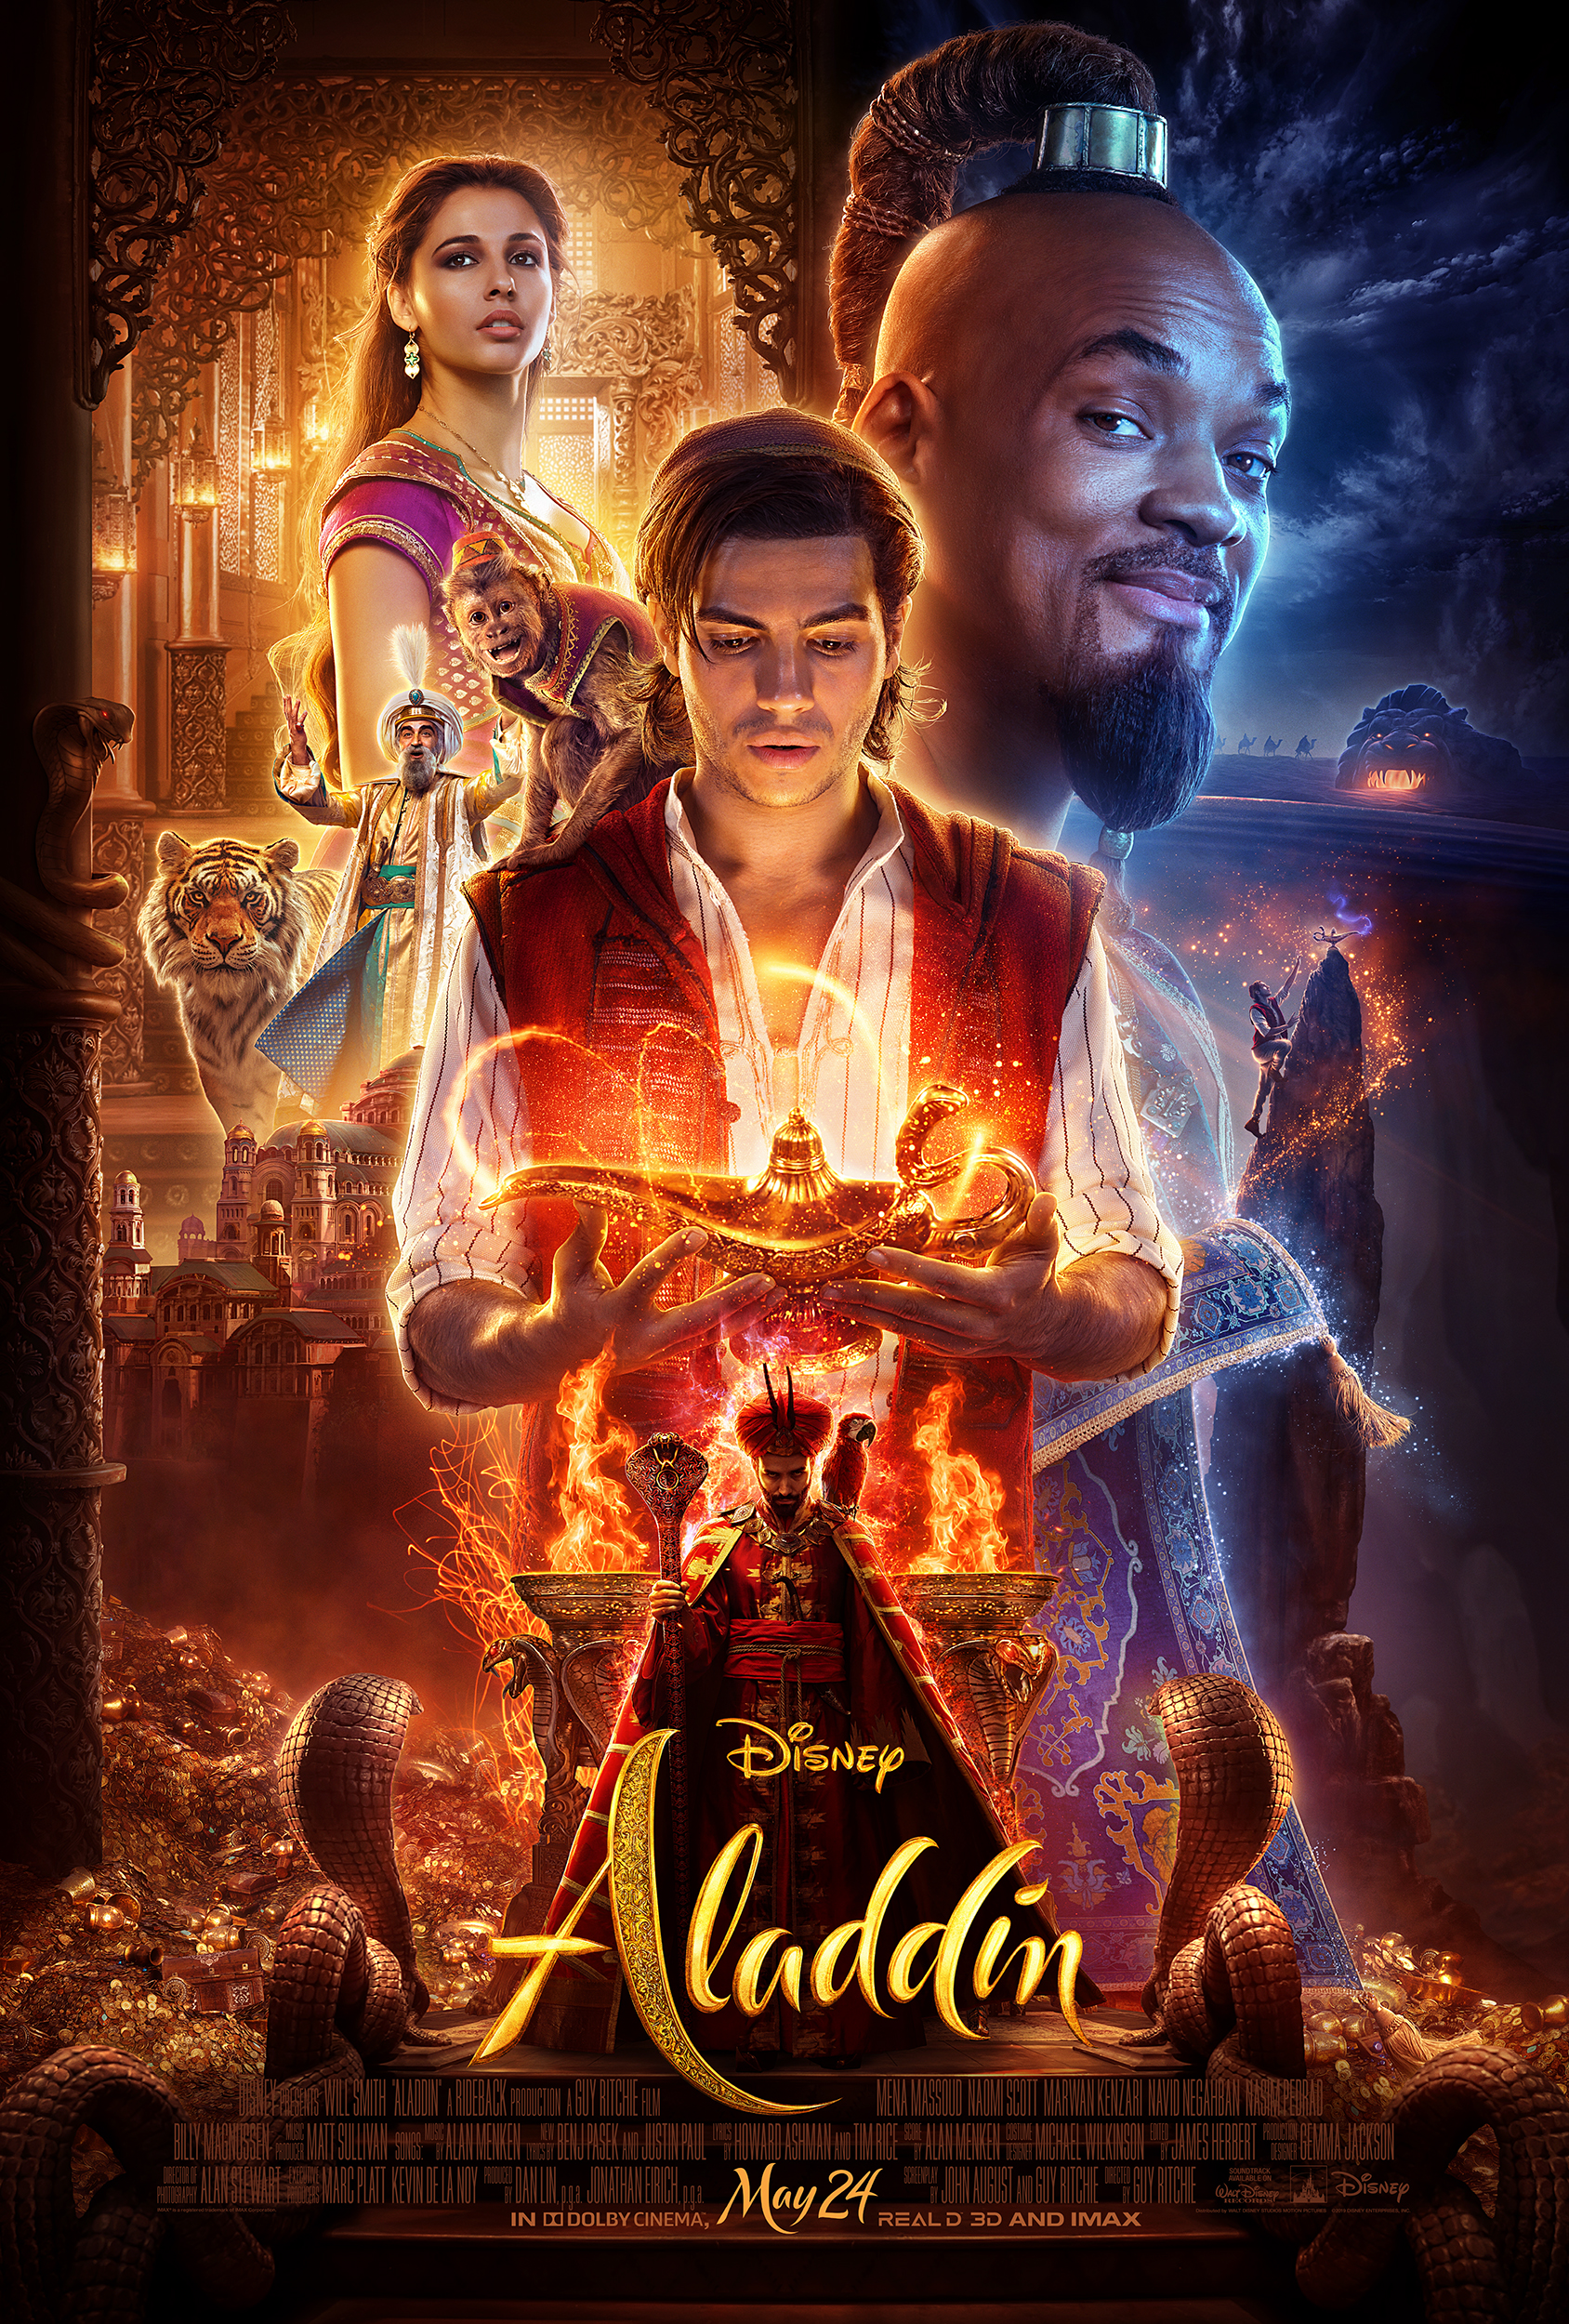 Take a look at the new theatrical poster for Disney's upcoming live action film, Aladdin!